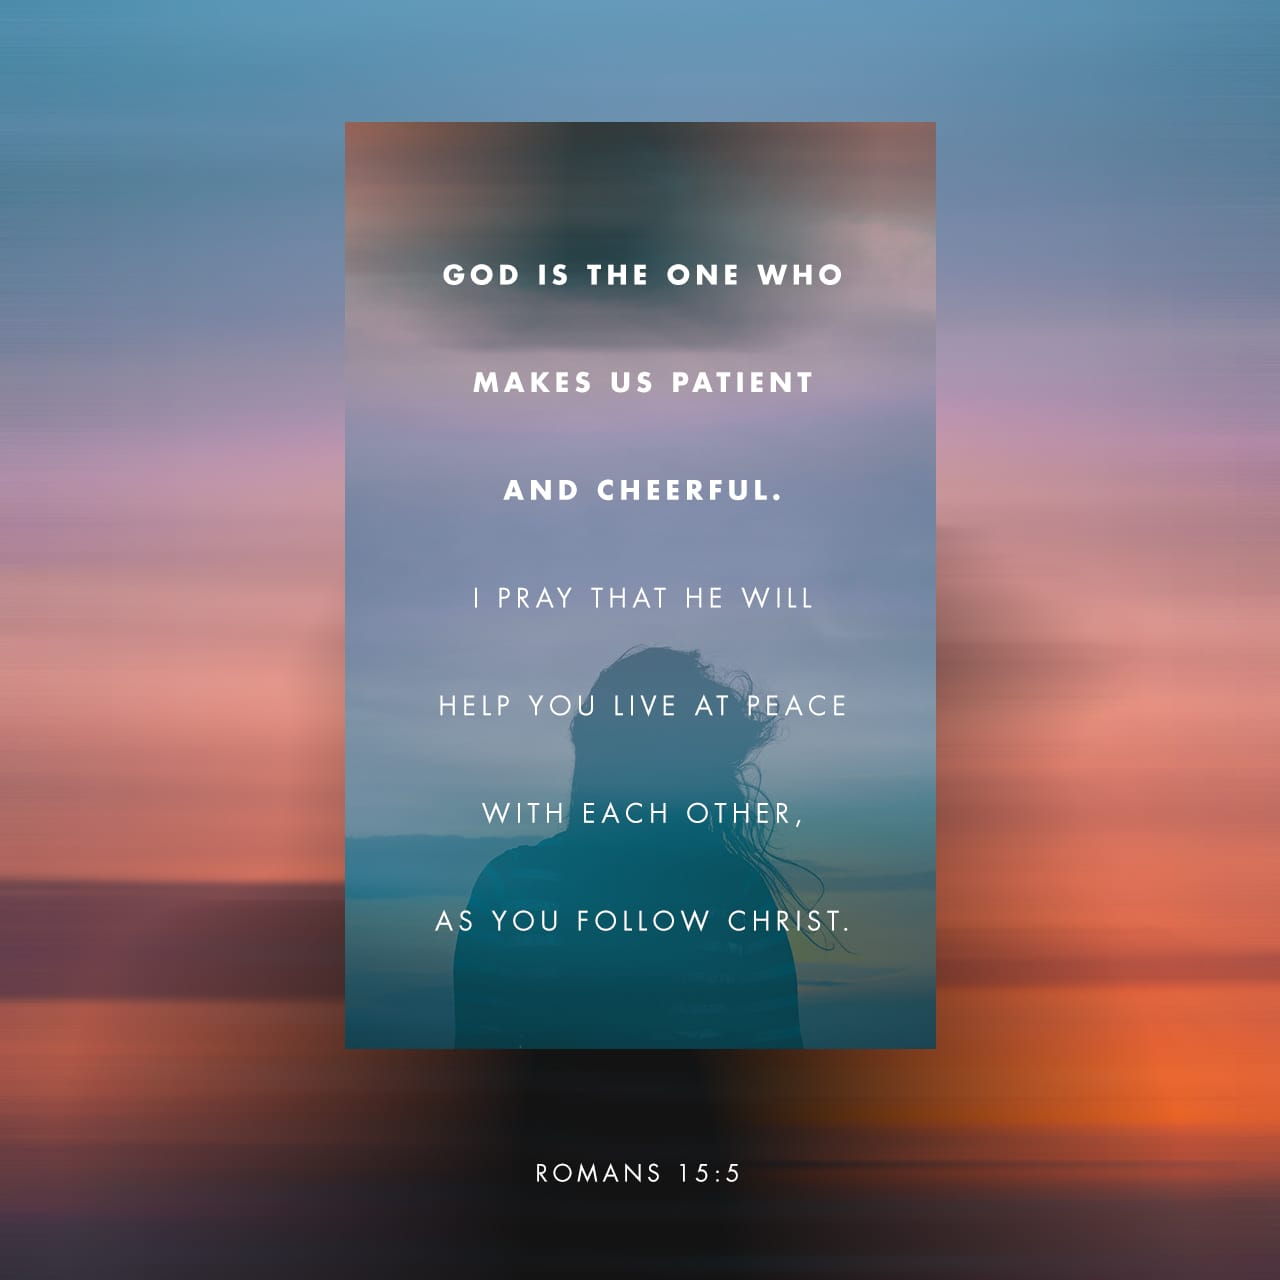 Romans 15:5 May the God who gives endurance and encouragement give you the same attitude of mind toward each other that Christ Jesus had | New International Version (NIV)